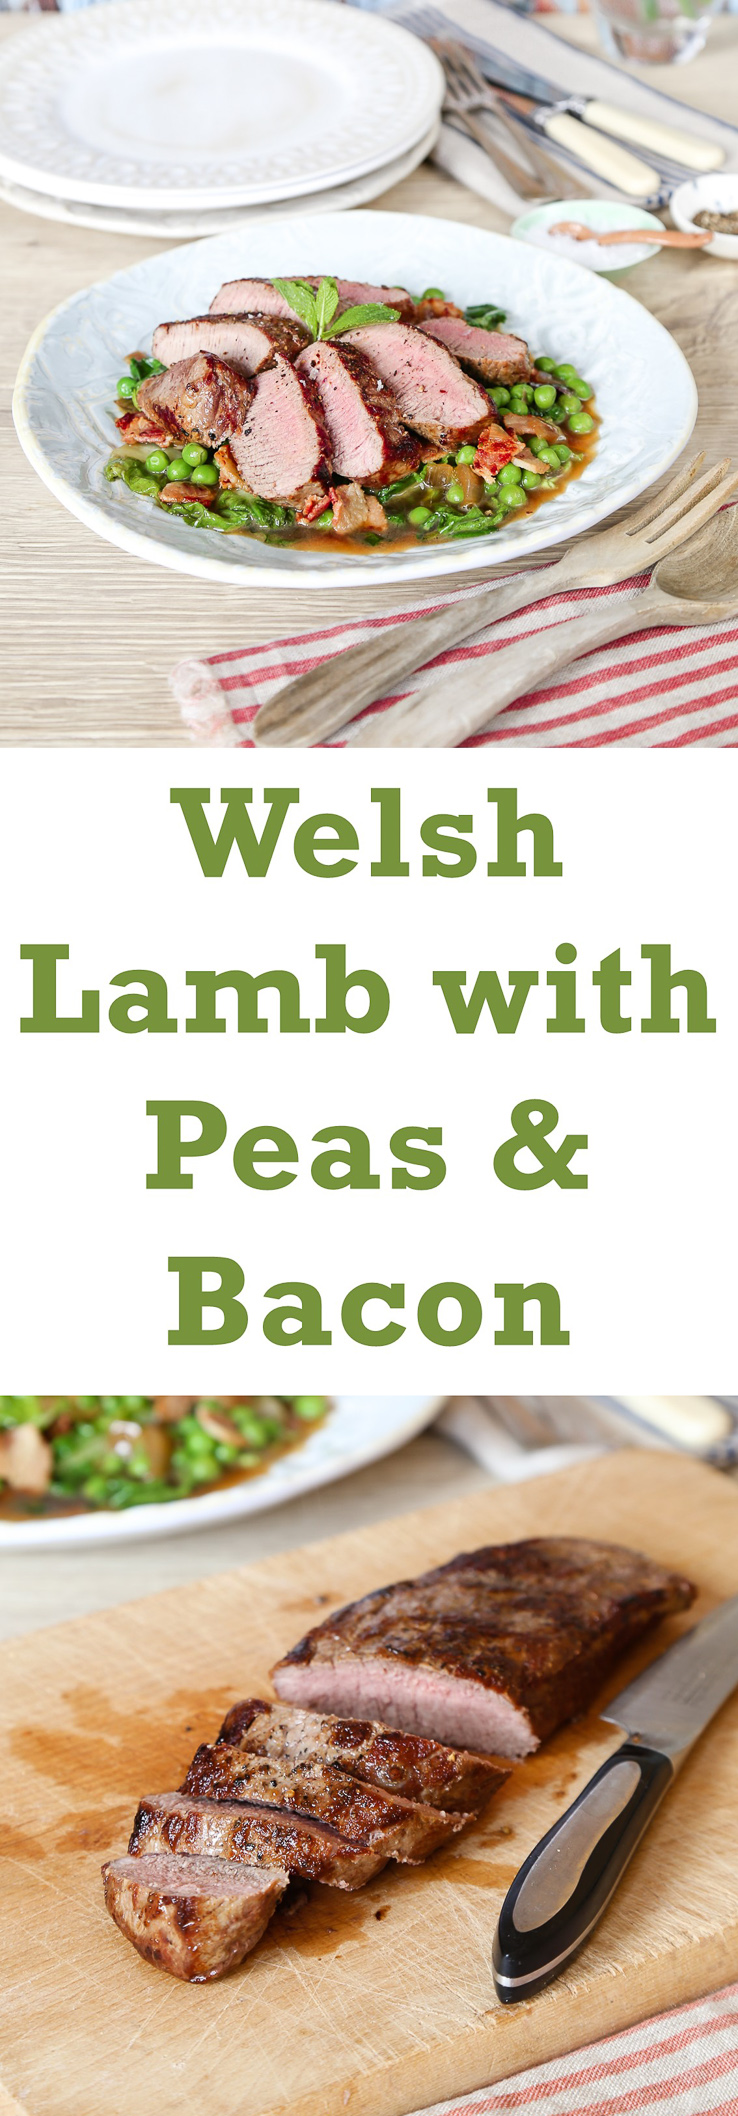 Bryn William's Loin of Welsh Lamb with Peas & Bacon | Fuss ...